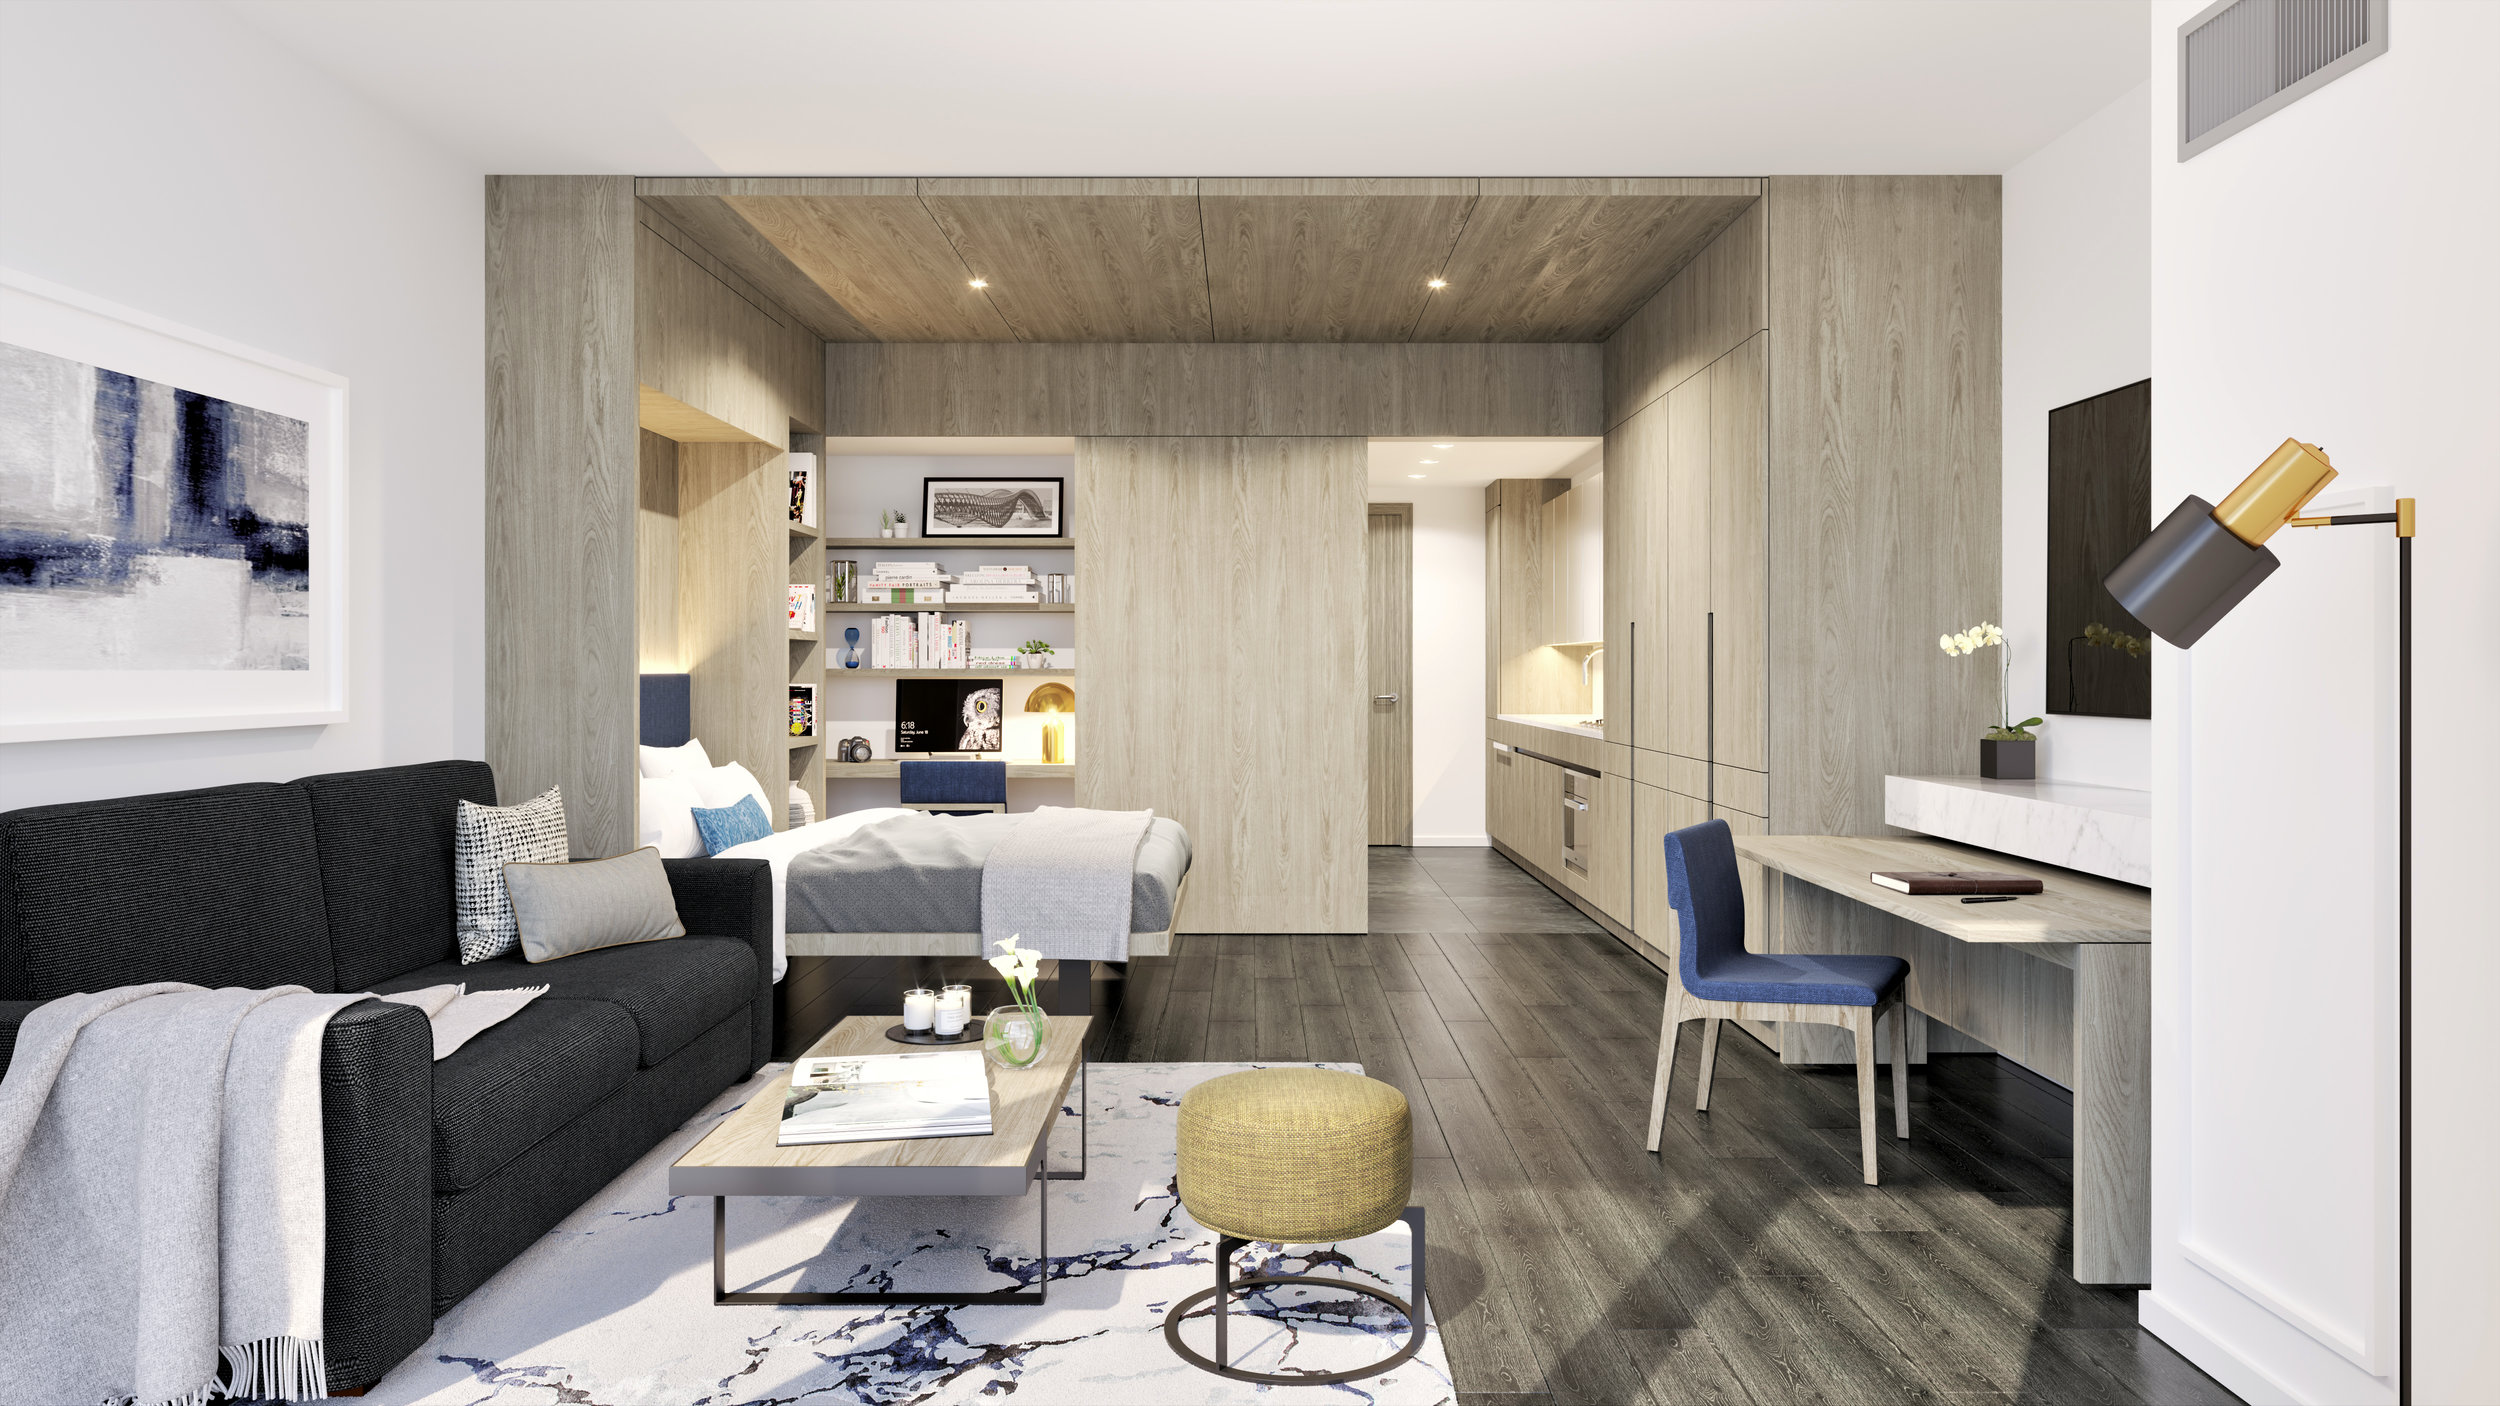 Get A Sneak Peak At Flushing, Queen's Most Luxurious New Condos At Tangram House West